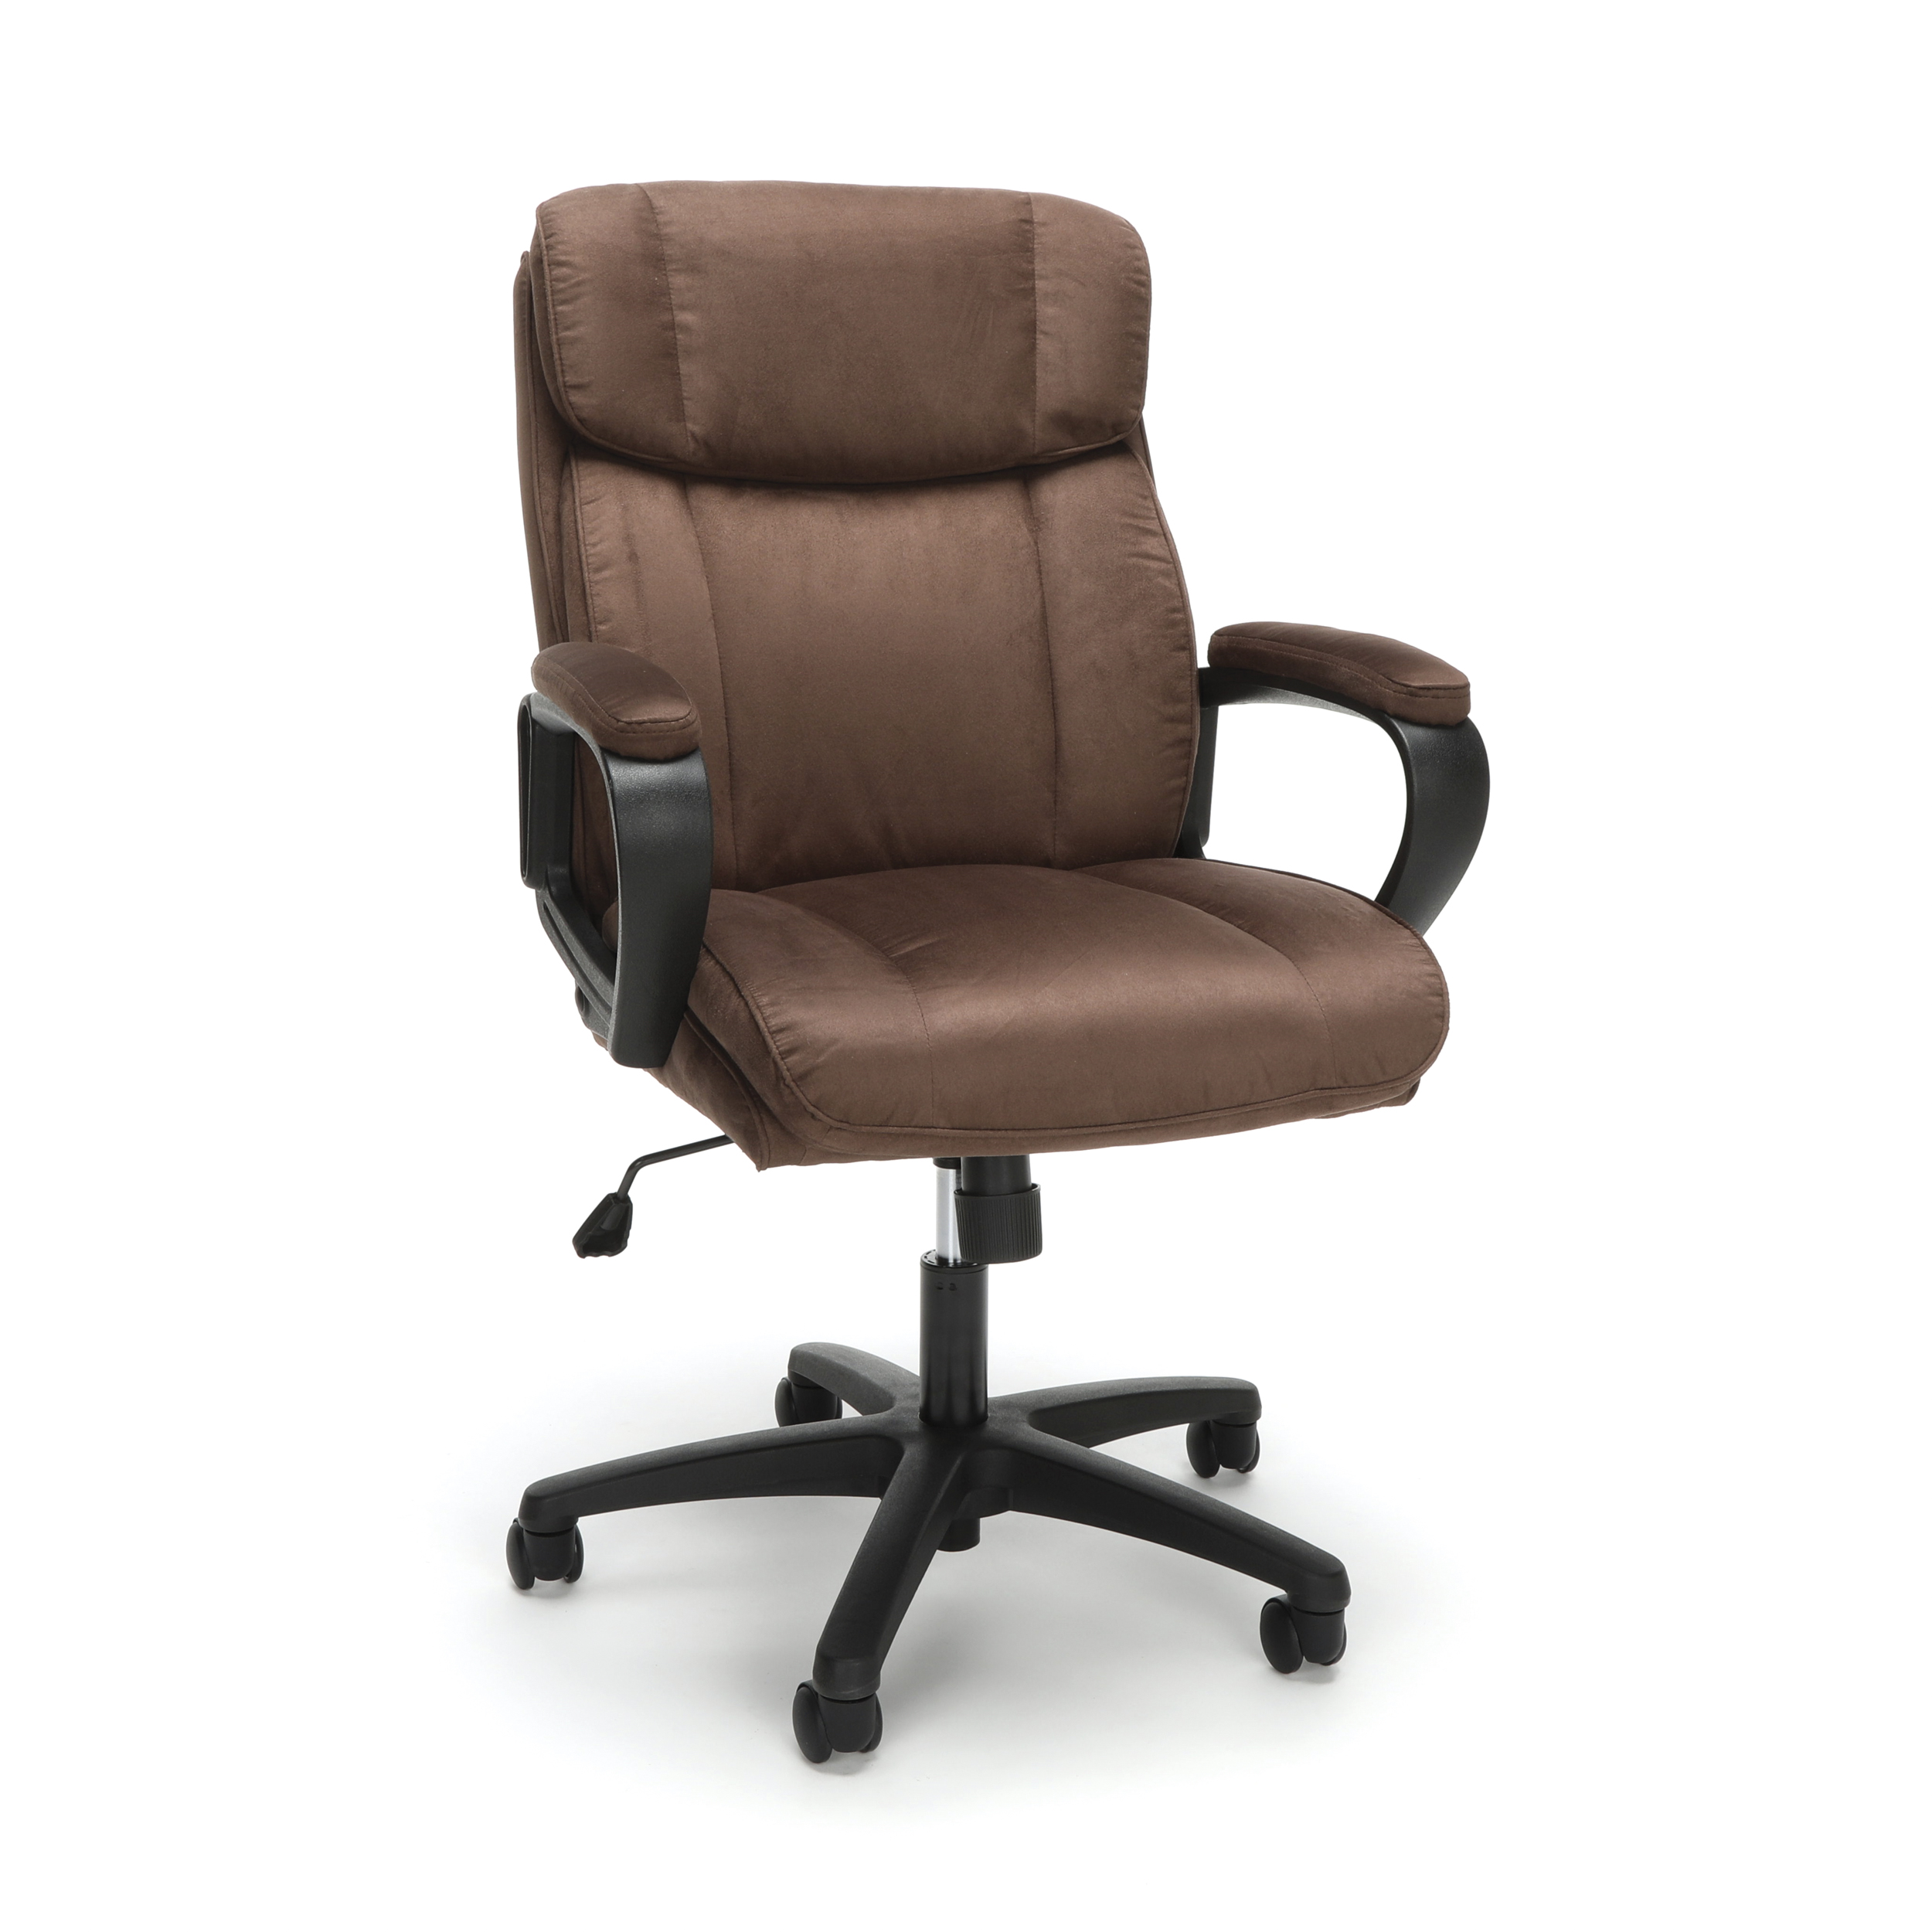 Essentials By OFM ESS 3082 Plush Microfiber Office Chair, Brown